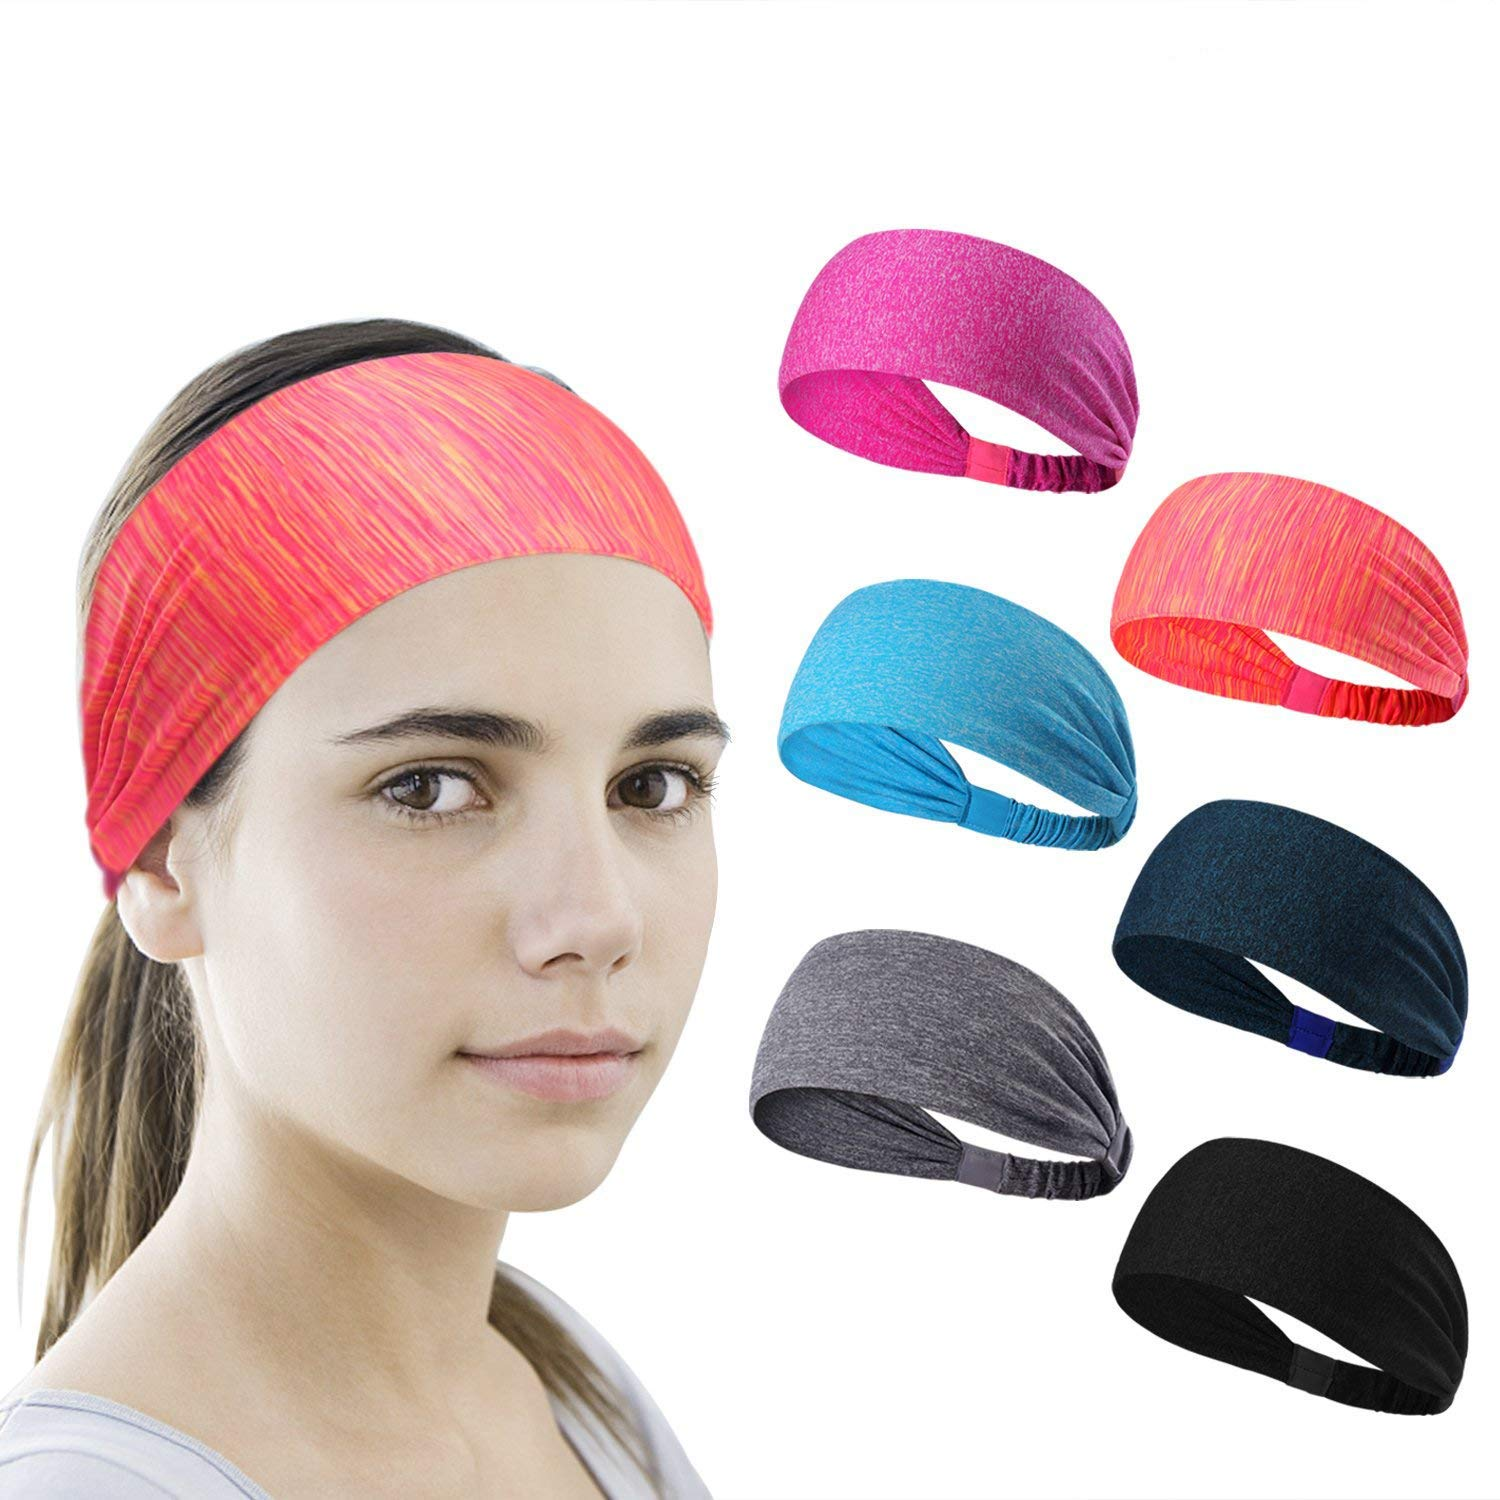 6 Pieces Sport Headband Yoga/Cycling/Running /Fitness ExerciseHairband Elastic Sweatband for Unisex by Leoter (Image #1)